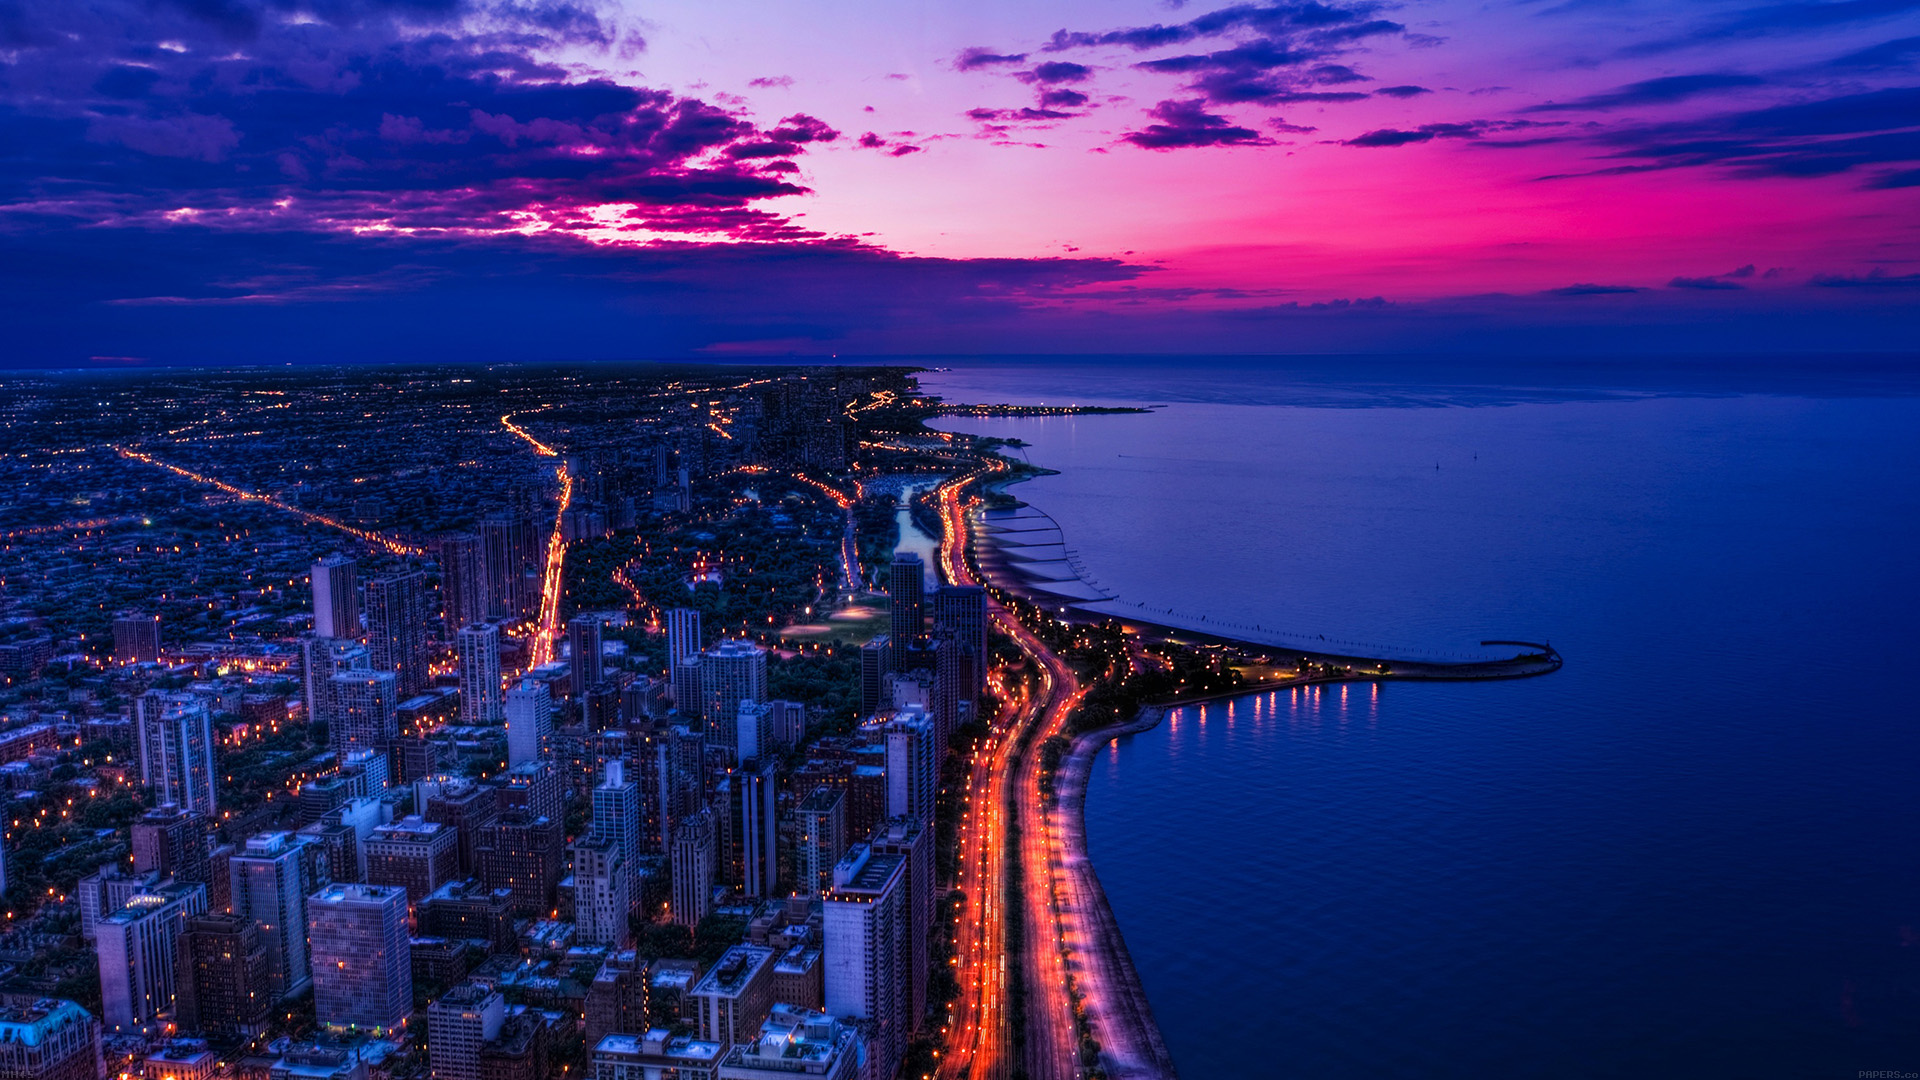 mh45-chicago-city-night-sky-view-scape-ocean-beach